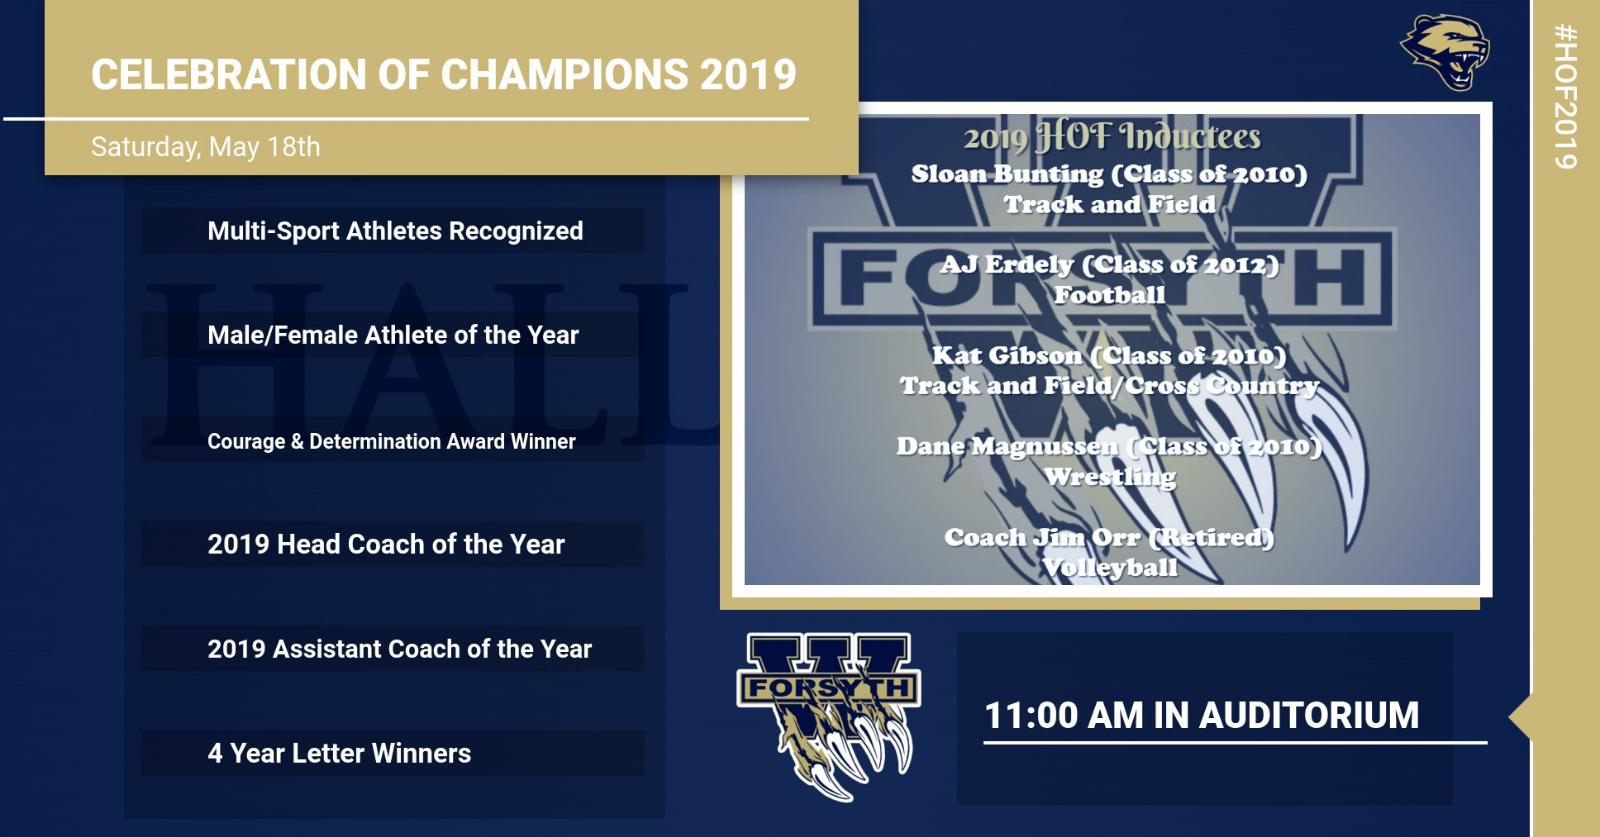 Celebration of Champions and 2019 HOF Set for Saturday, 5/18 at 11:00 am in Auditorium